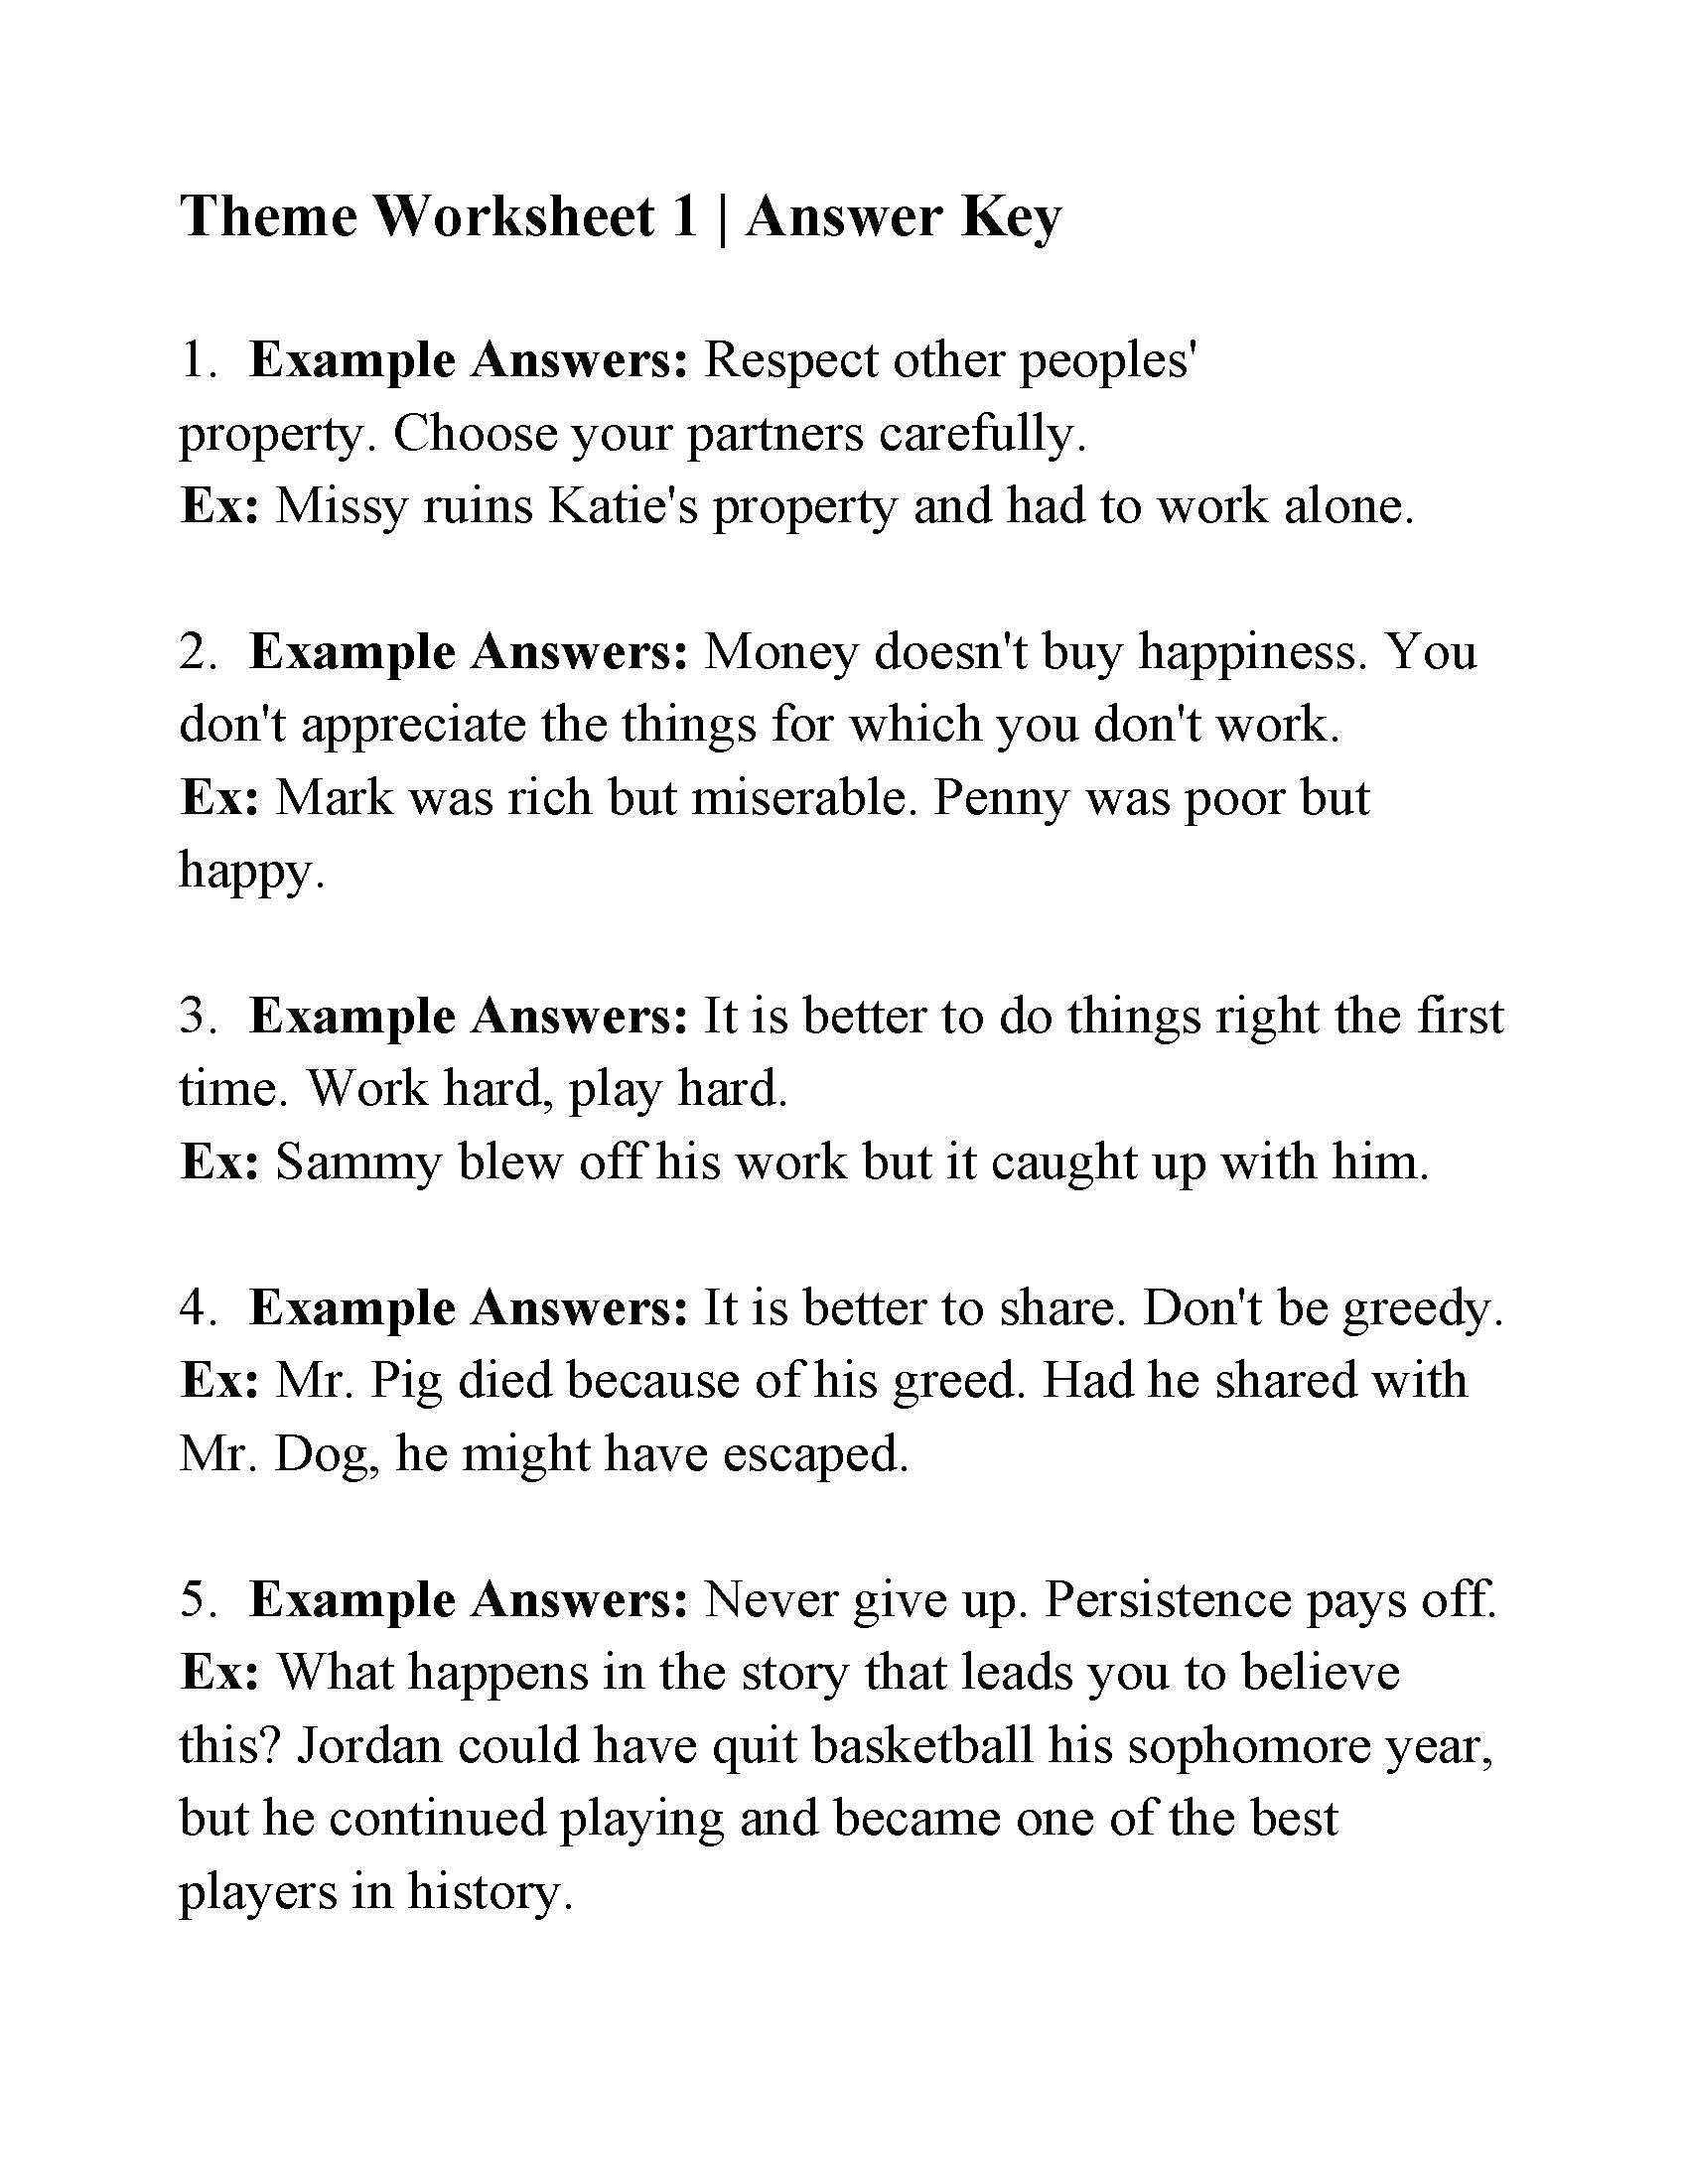 This Is The Answer Key For The Theme Worksheet 1 School Worksheets Literal Equations Kindergarten Worksheets